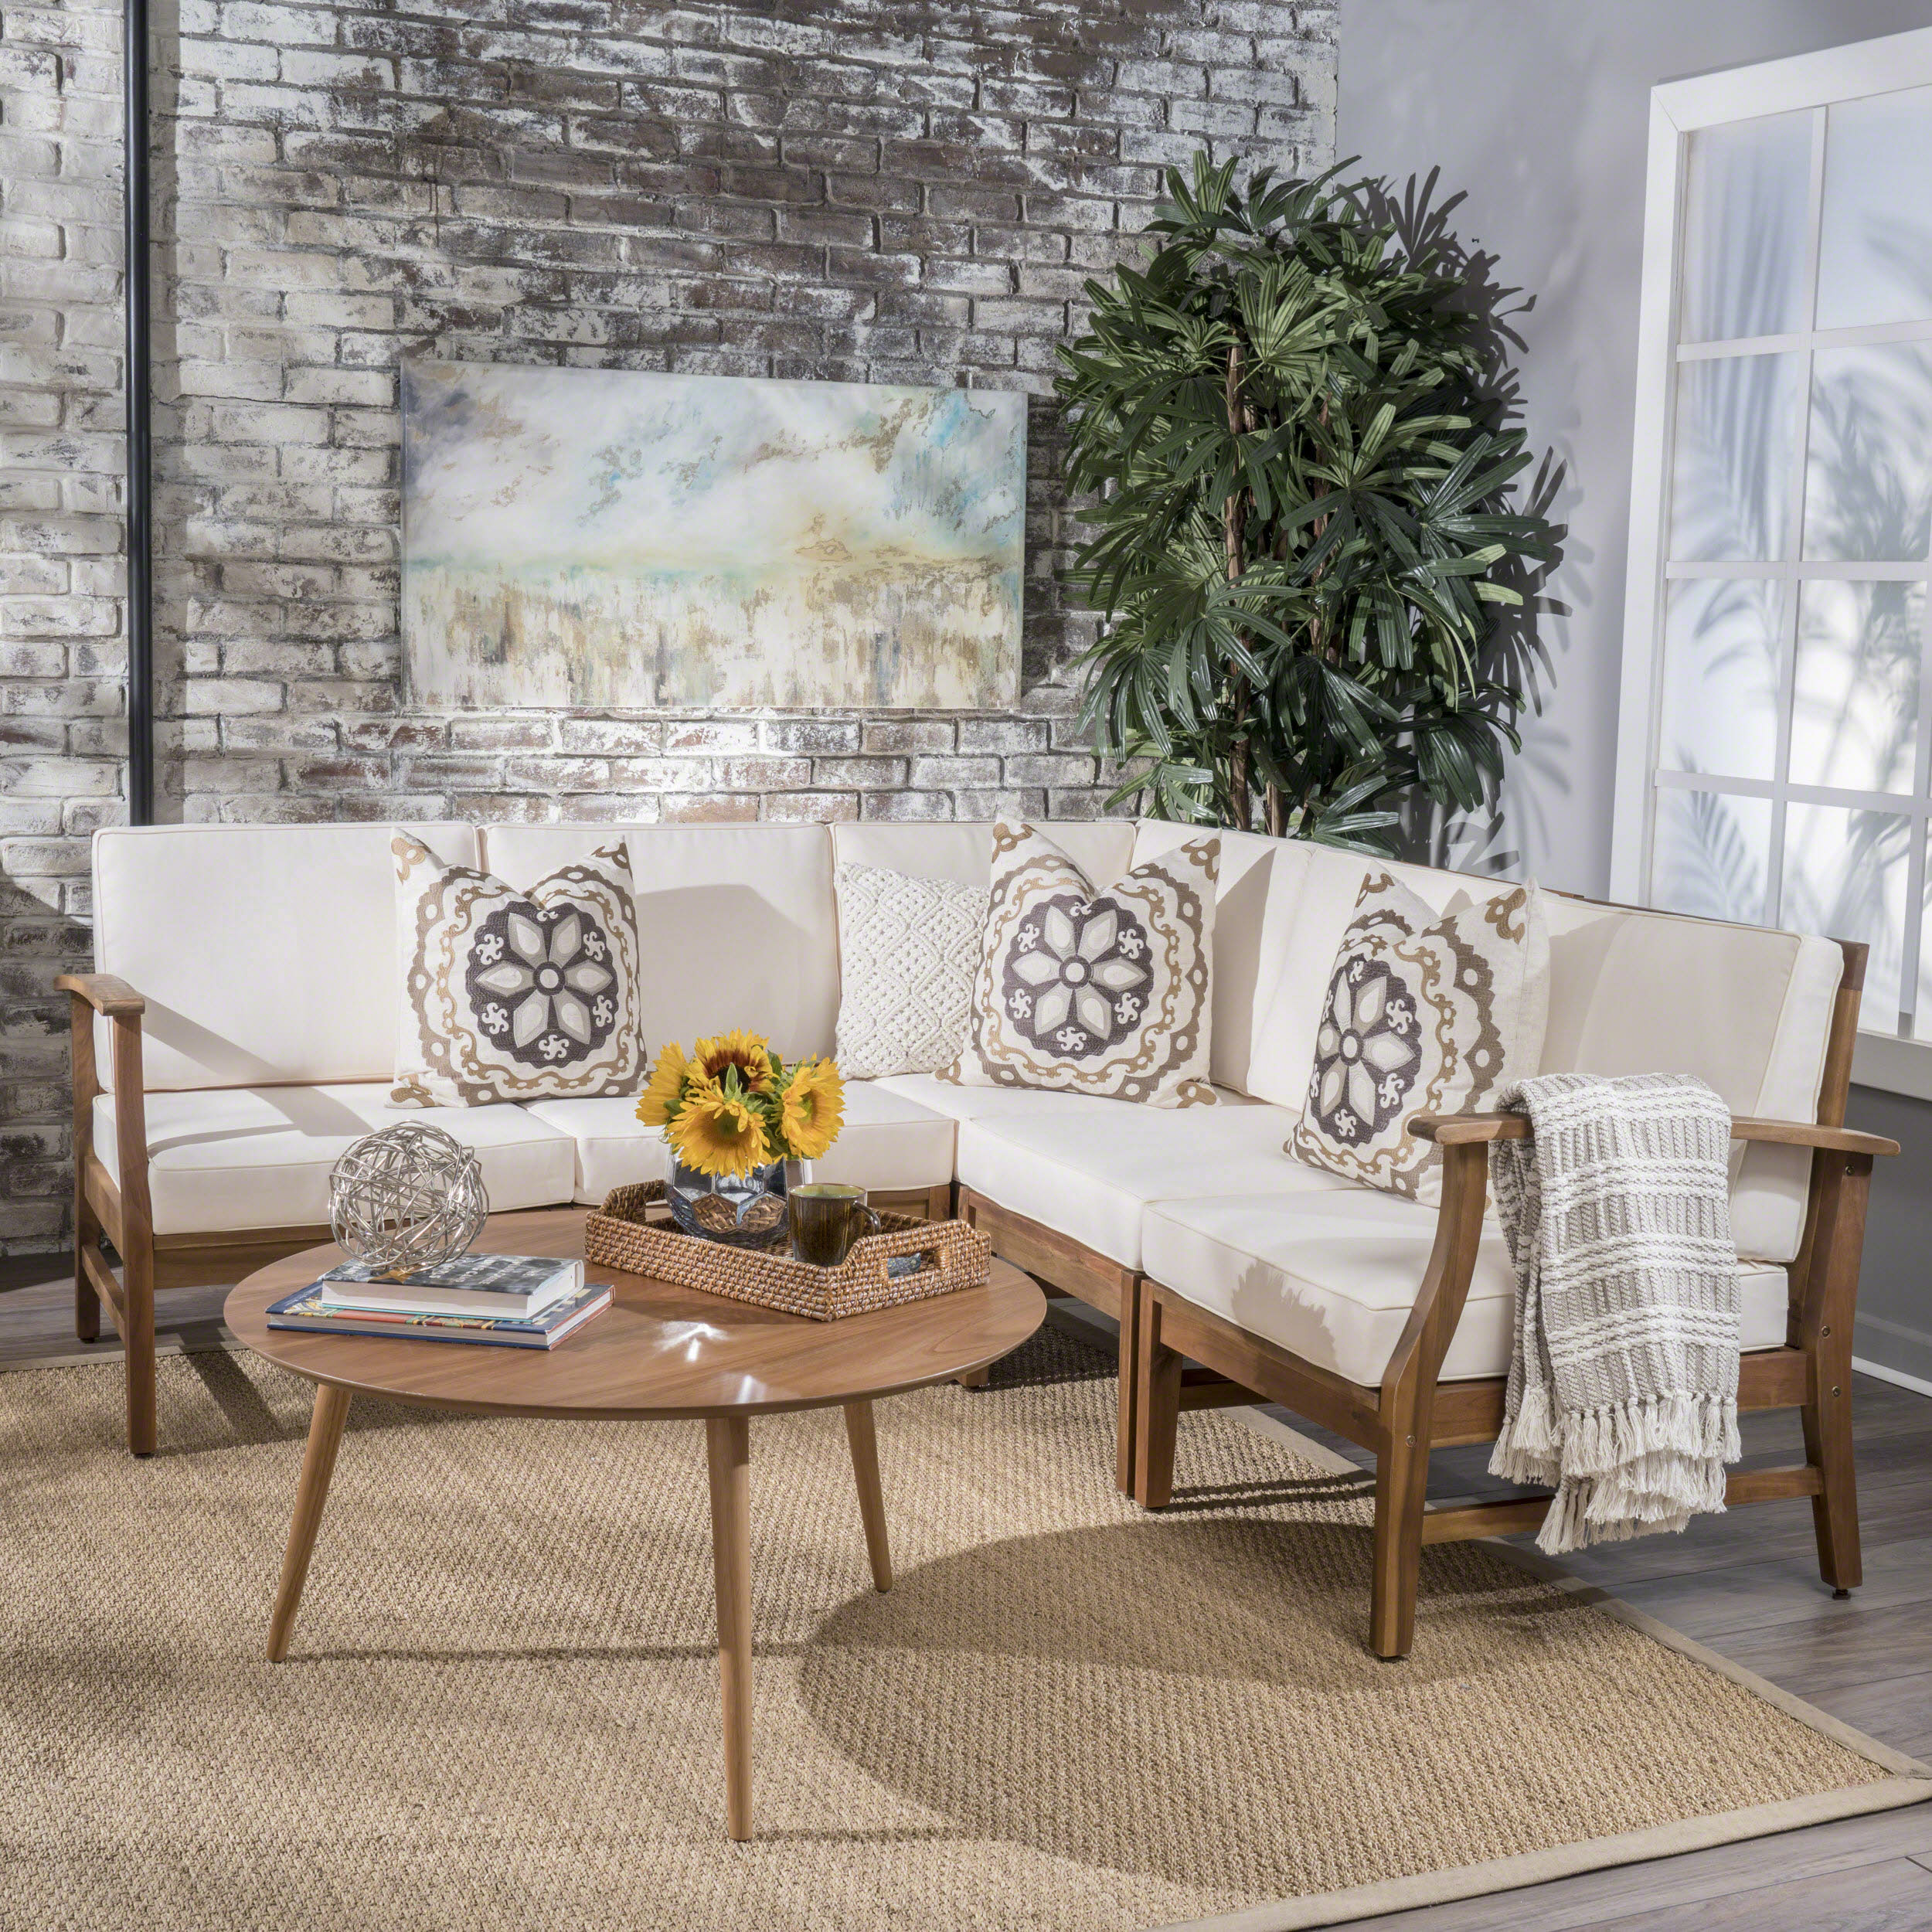 Elby Indoor Farmhouse 5 Piece Chat Set with Cushions, Teak Finish, Cream